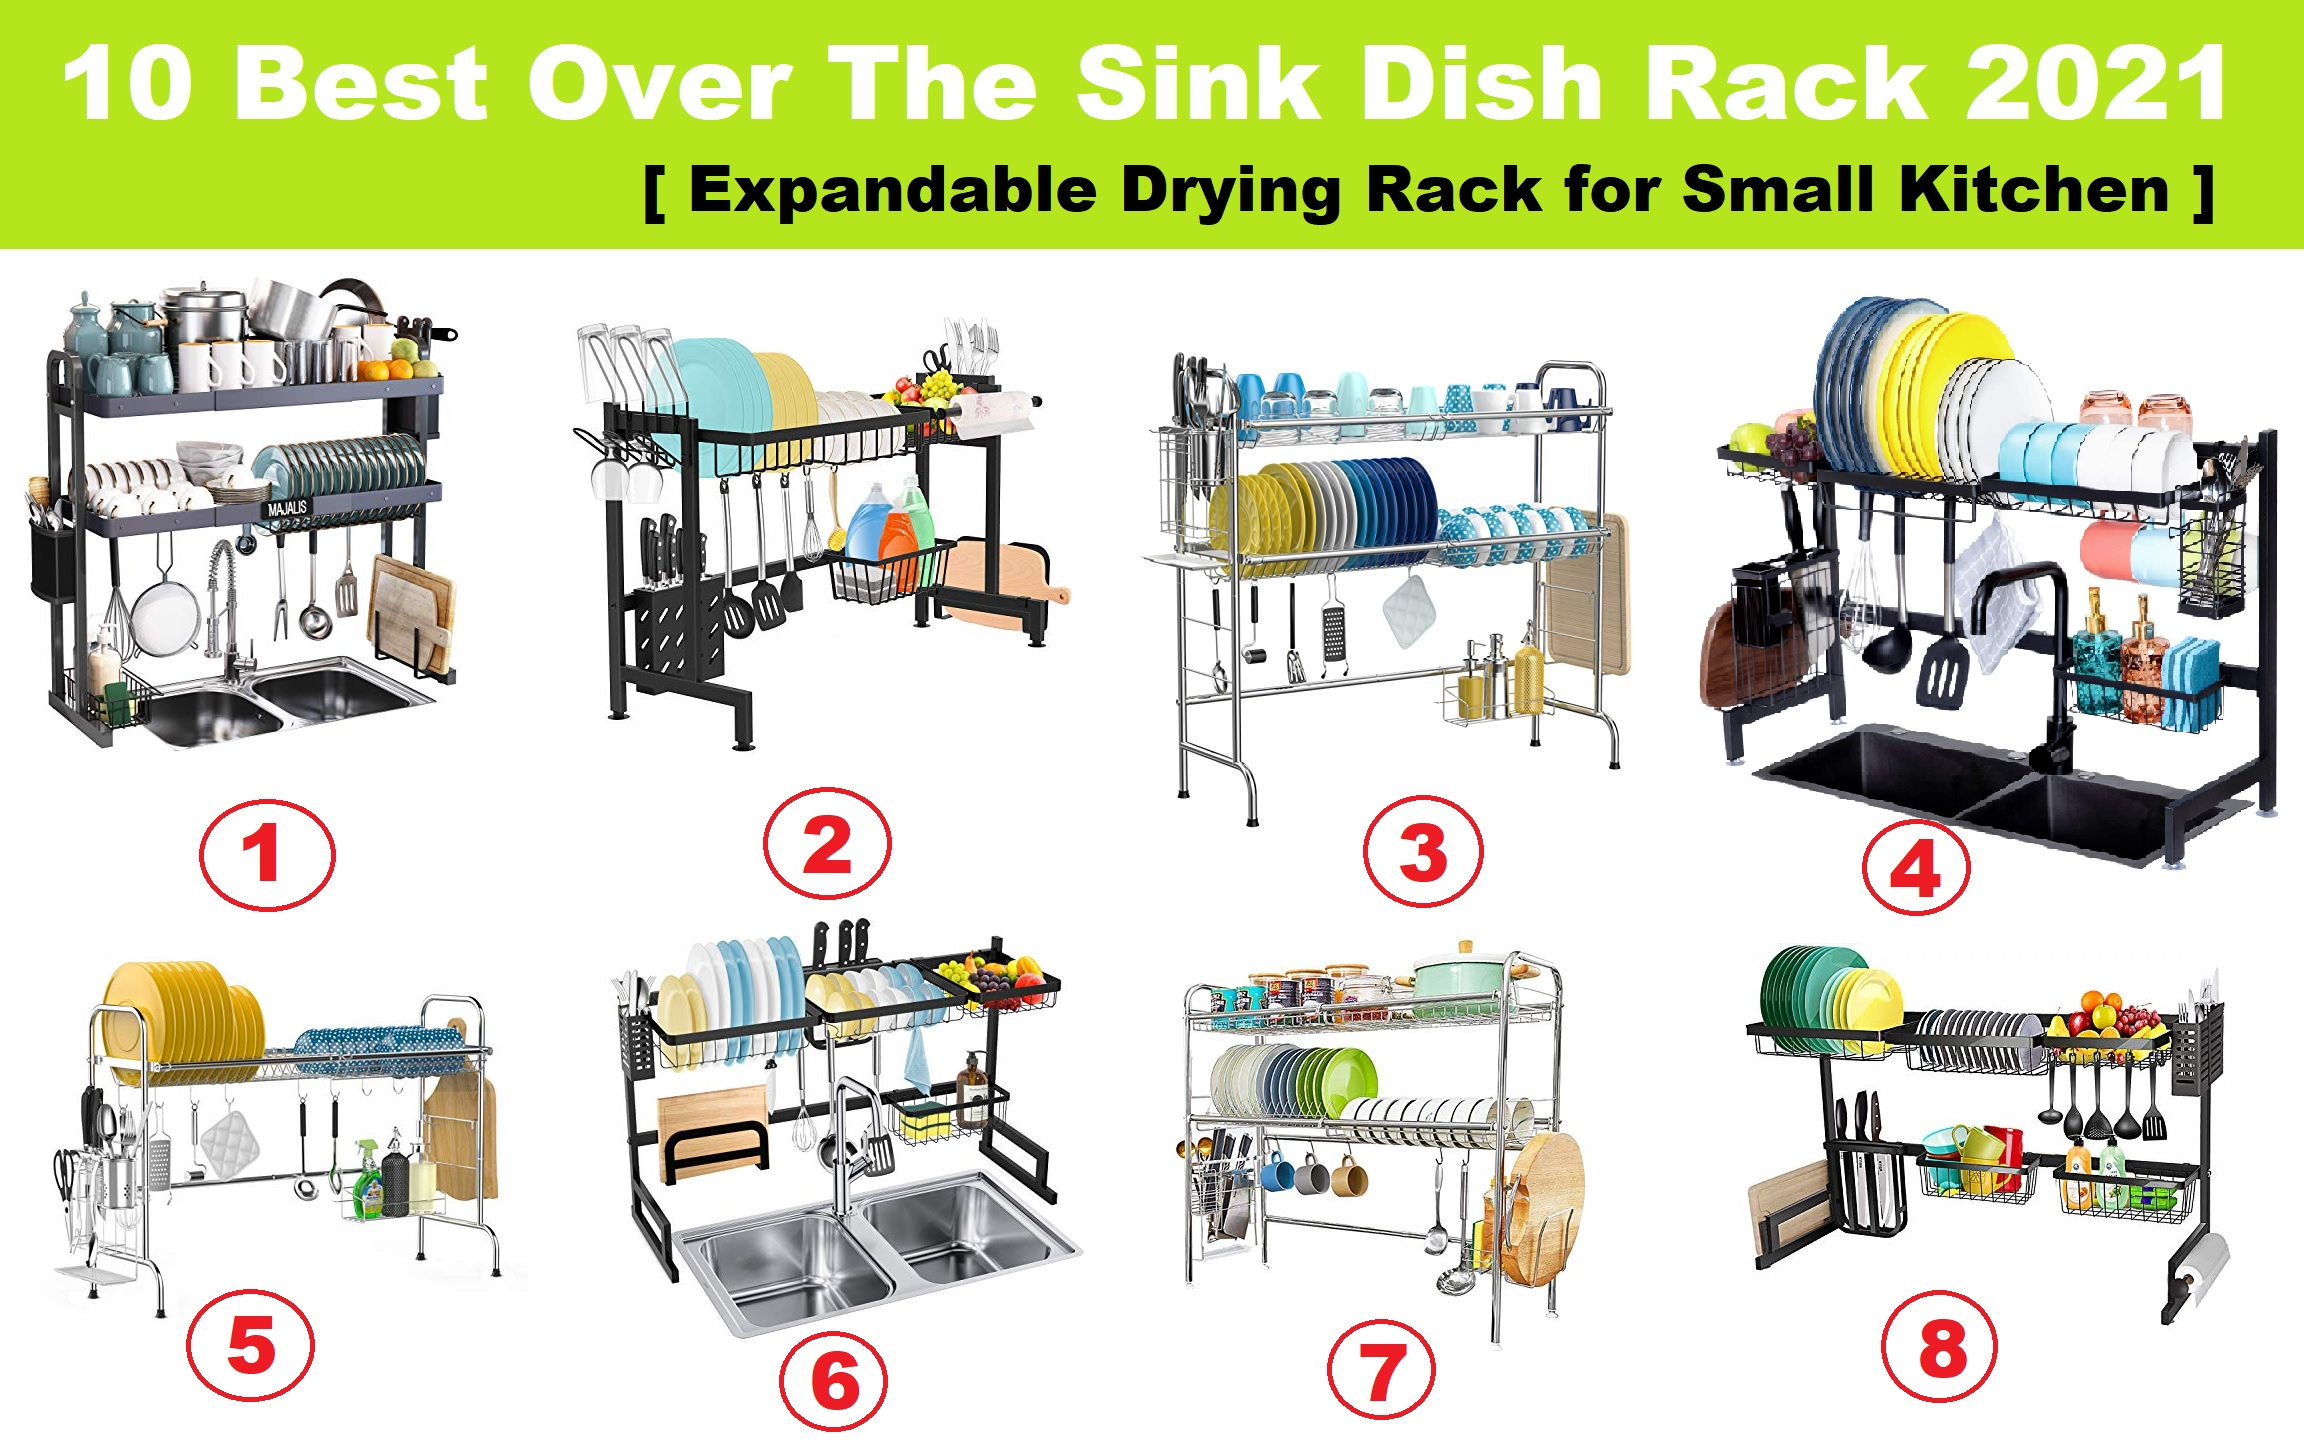 10 Best Over The Sink Dish Rack 2021 Review Expandable & Tall Drying Rack for Small Kitchen